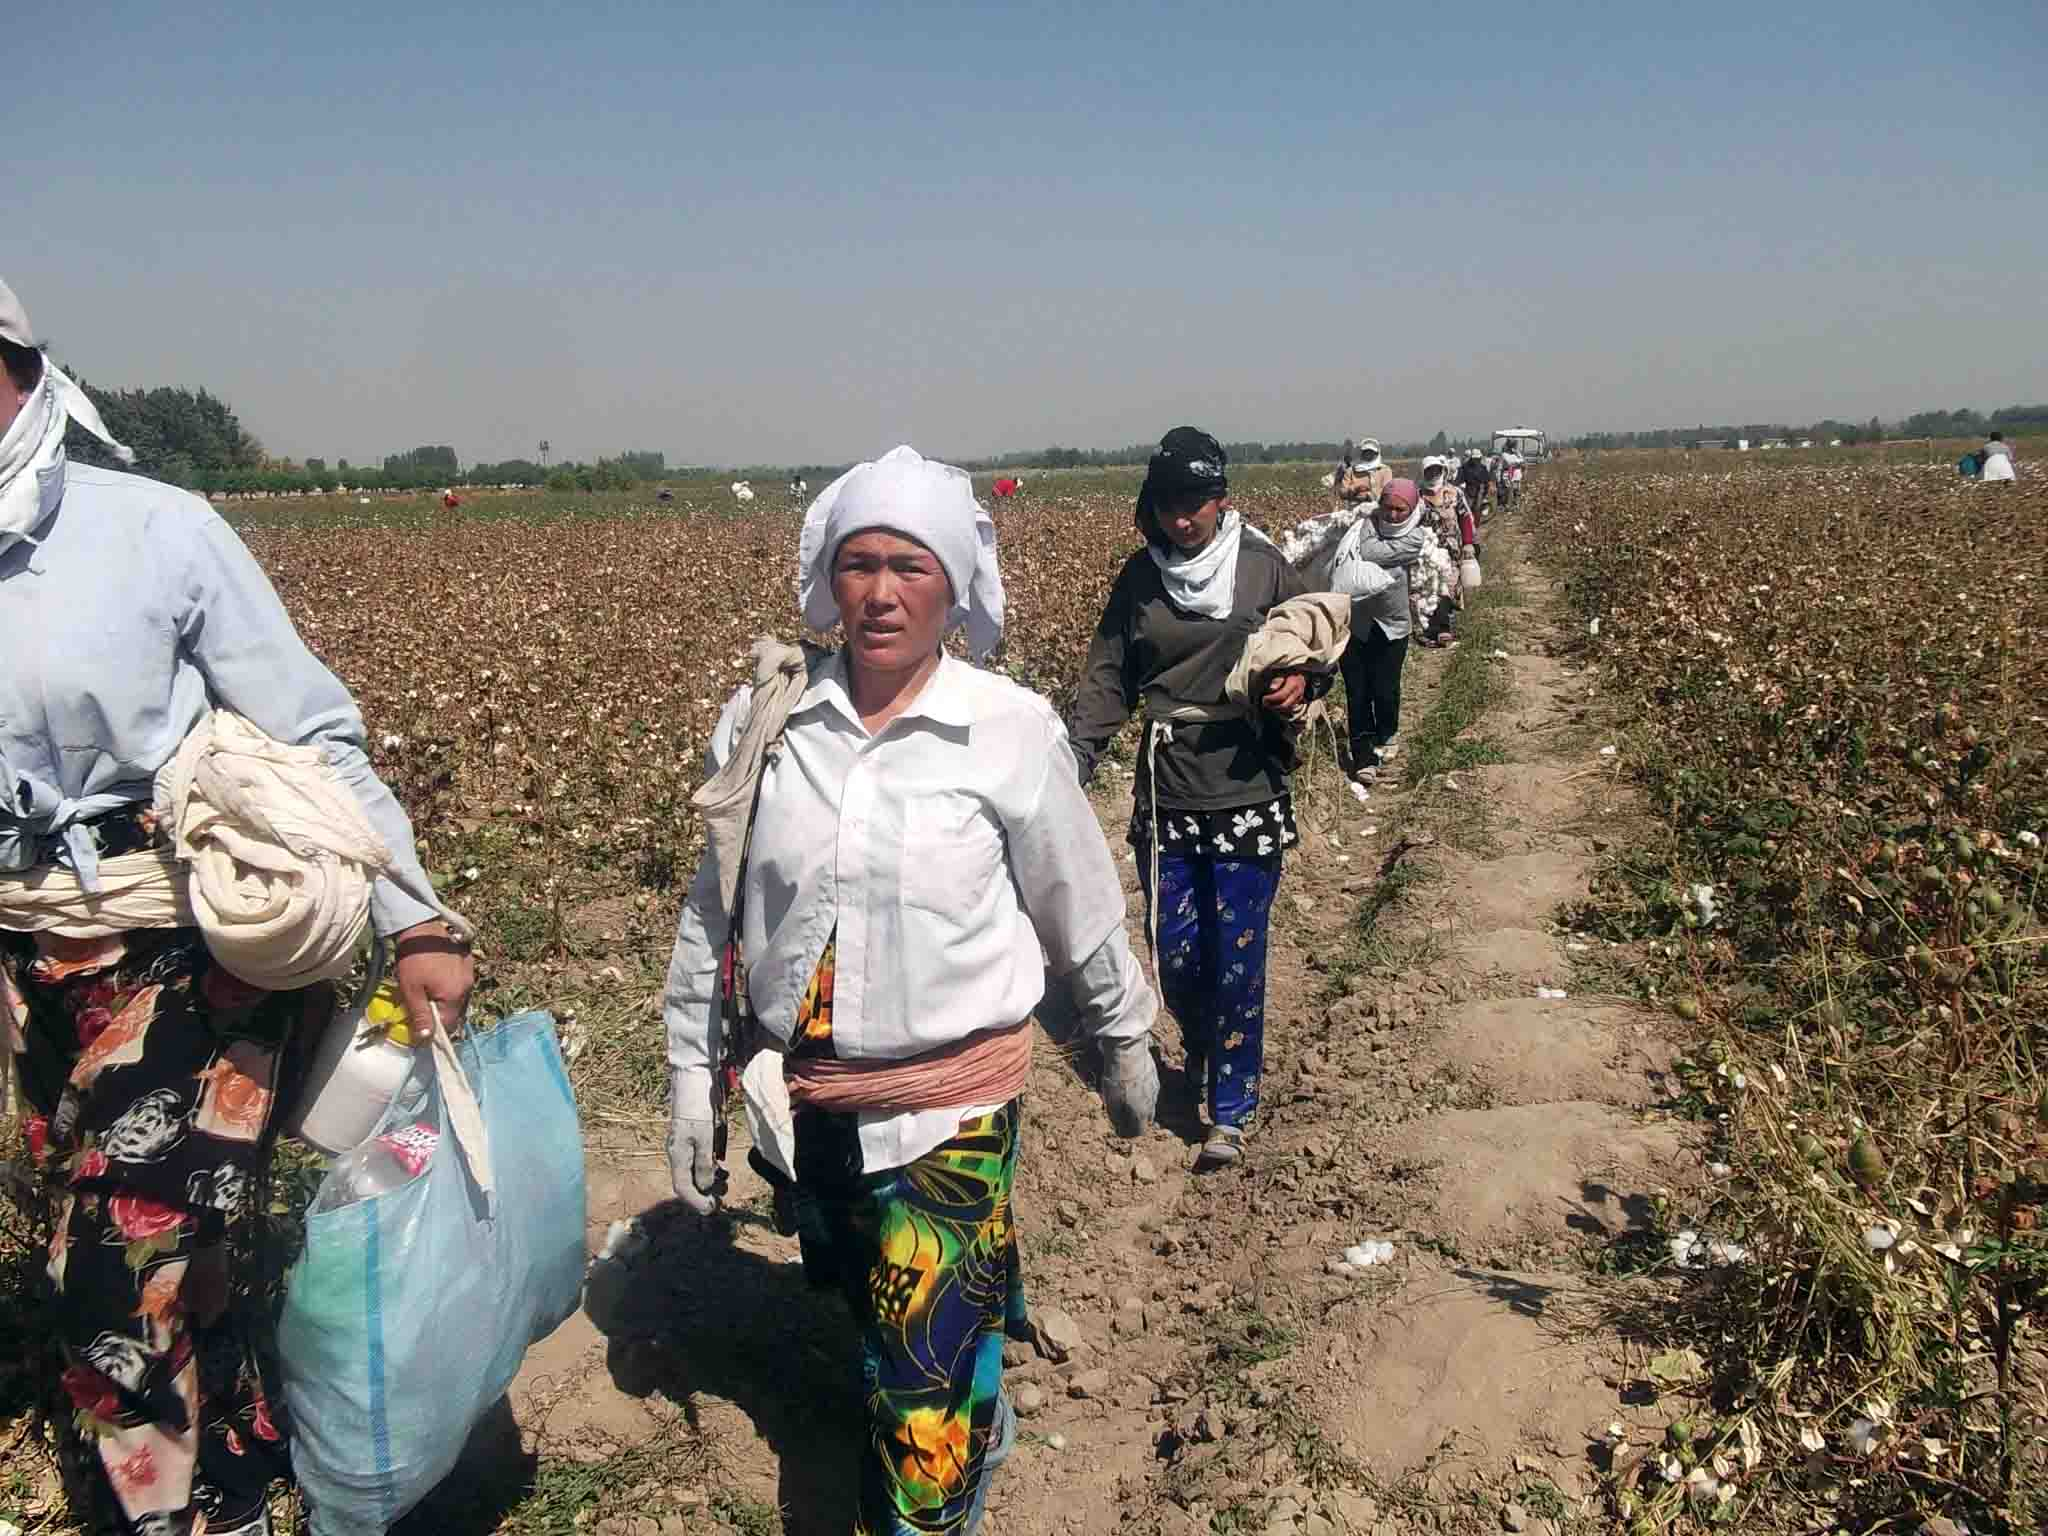 Uzbekistan, forced labor, cotton harvest, human rights, Solidarity Center